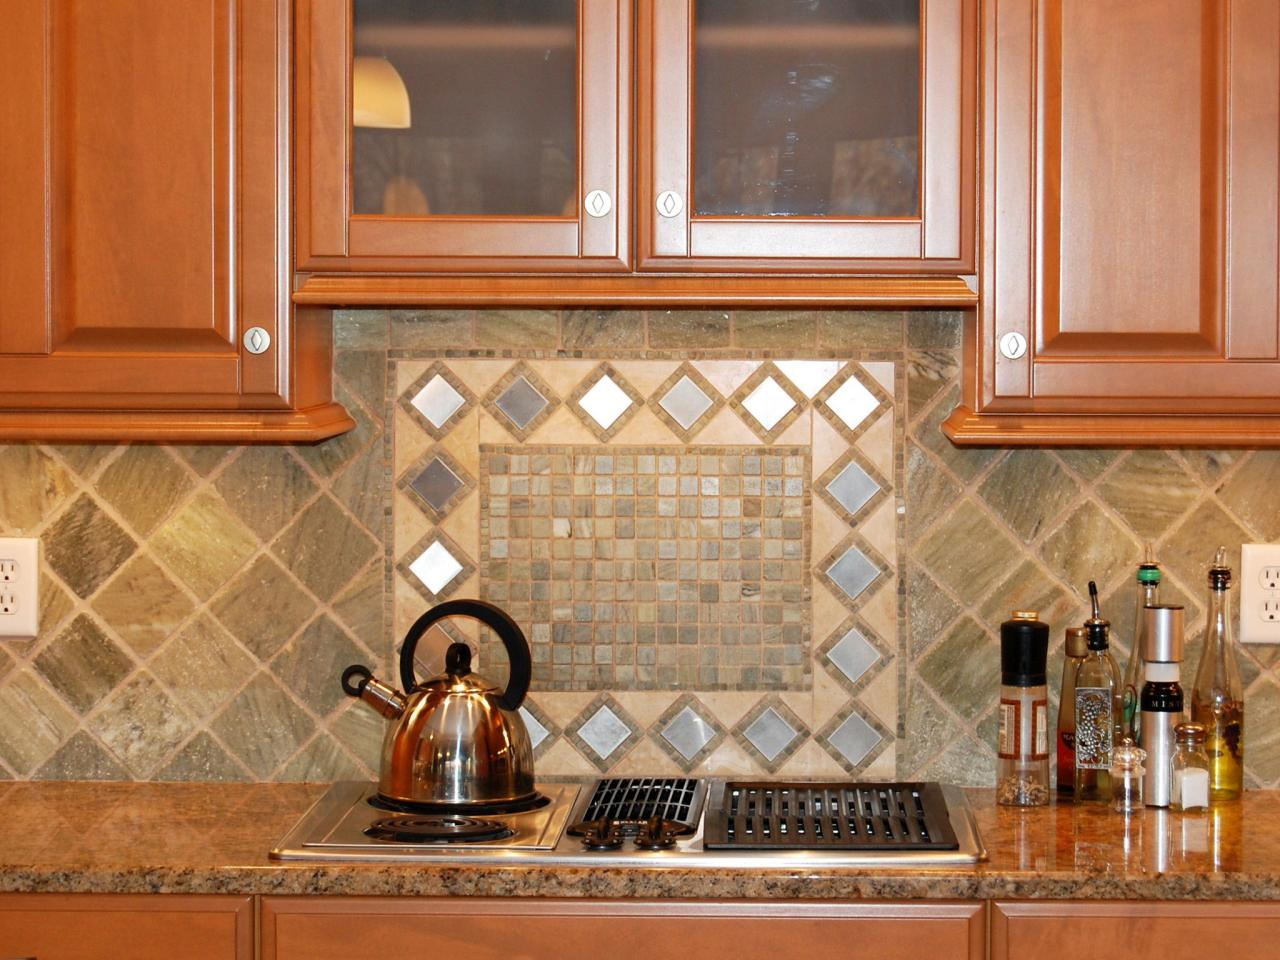 Kitchen backsplash tile ideas hgtv mosaic tile kitchen backsplash dailygadgetfo Image collections